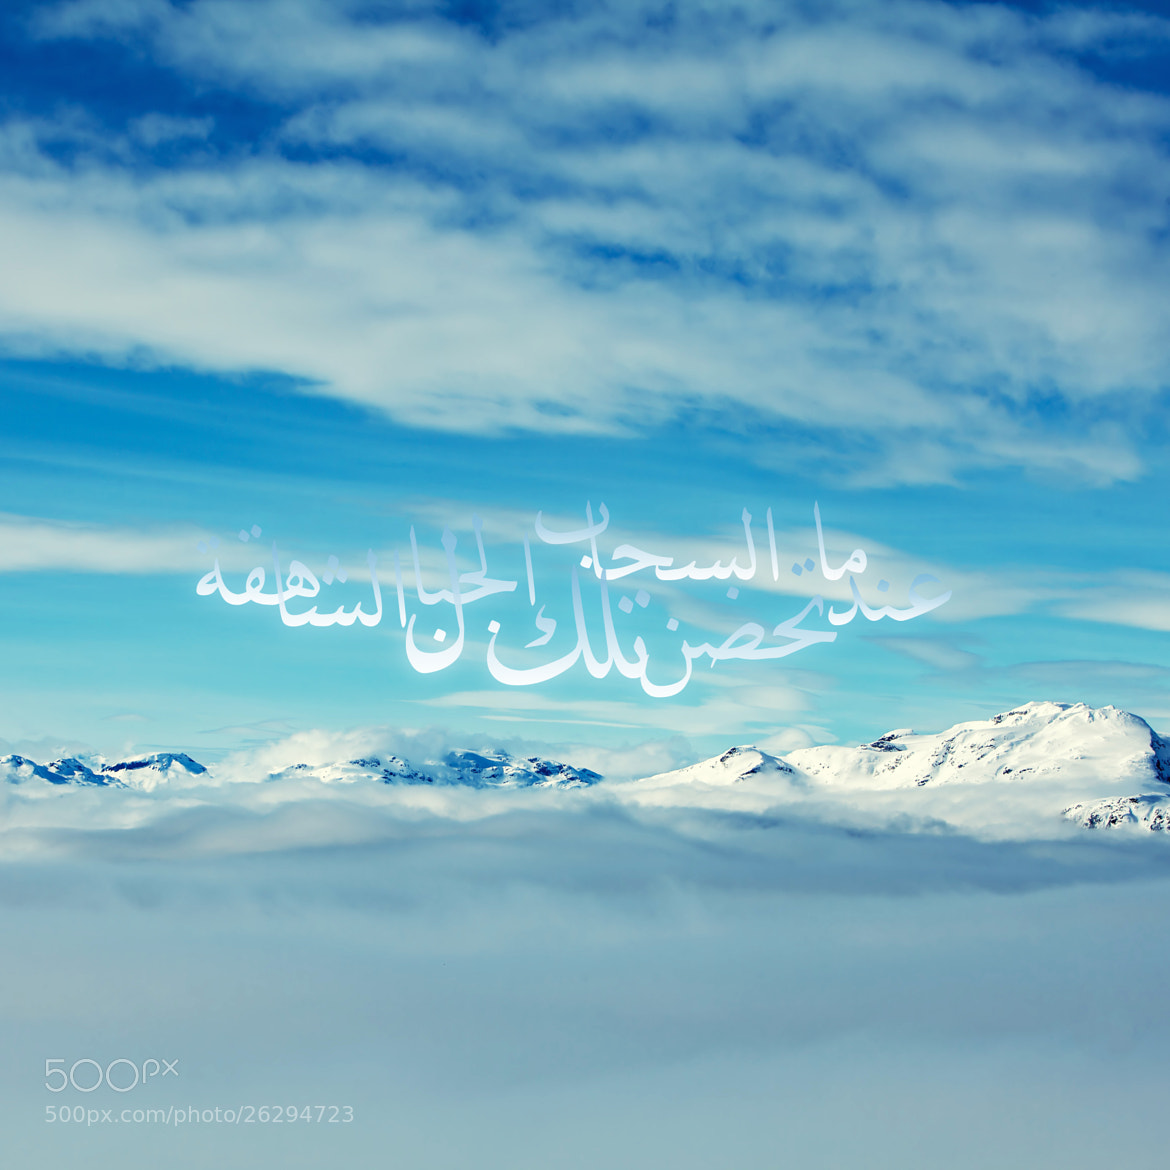 Photograph Arabic Tones to the Summit of Whistler by Raed Al-Banna on 500px